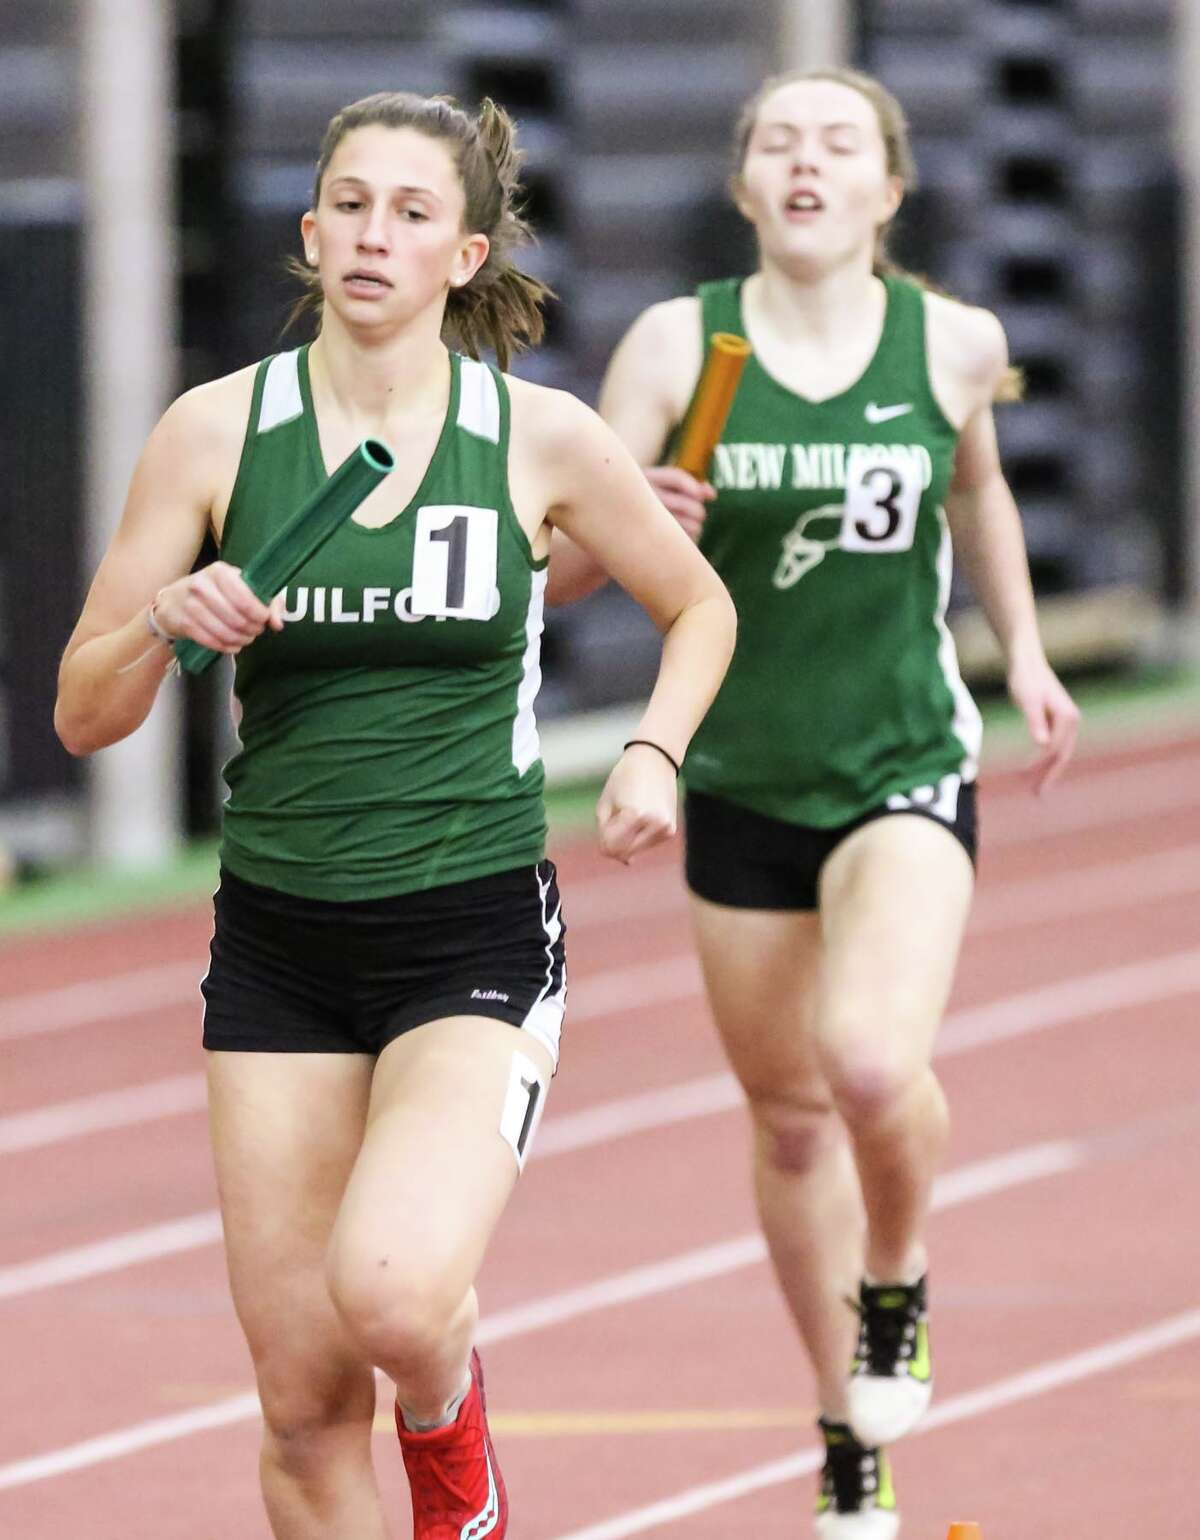 Action from the CIAC Class L state Indoor Track championships held at the Floyd Little Athletic Complex in New Haven Thursday, February 8, 2018.